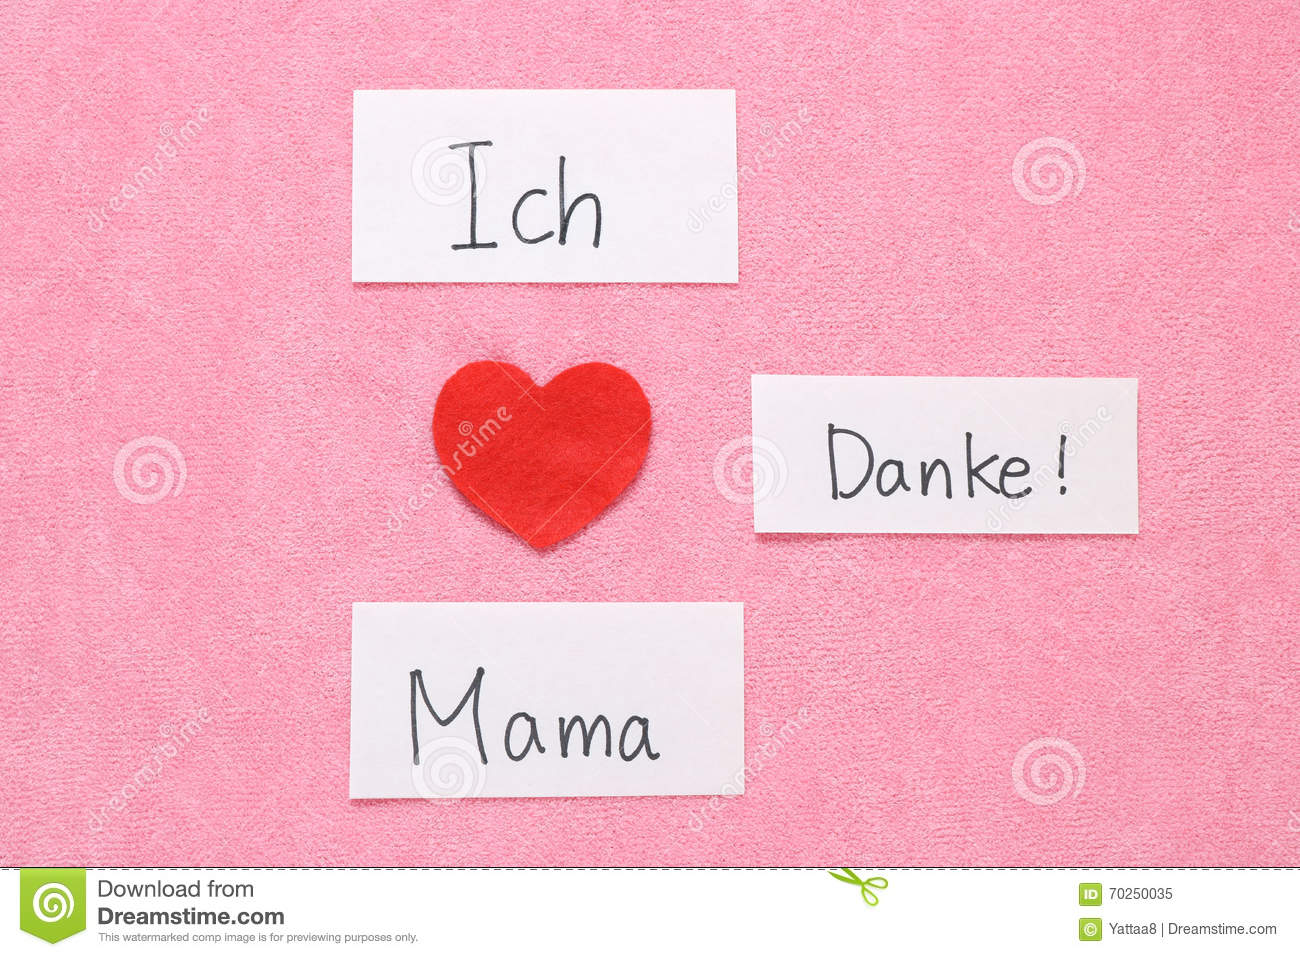 how to pronounce thank you in german